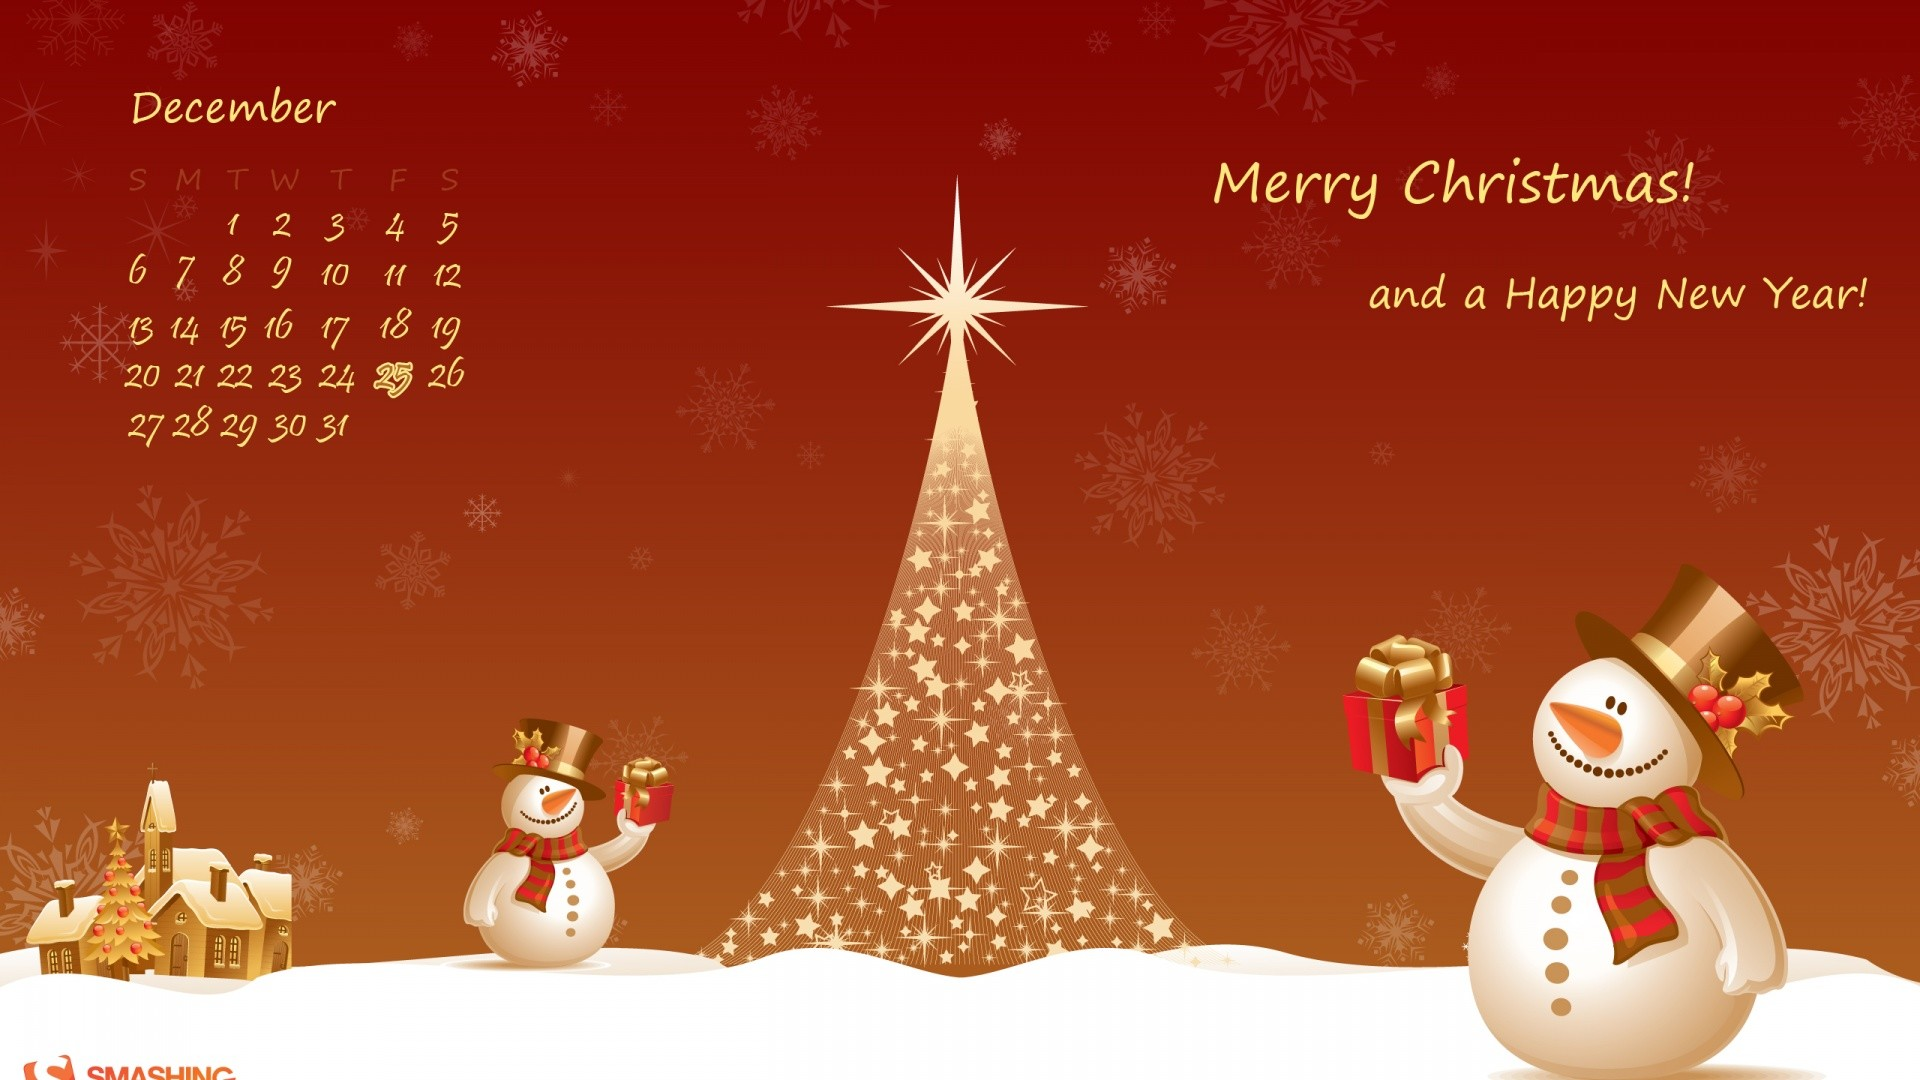 Christmas Snowman. How to set wallpaper on your desktop? Click  the download link from above and set the wallpaper on the desktop from your  OS.